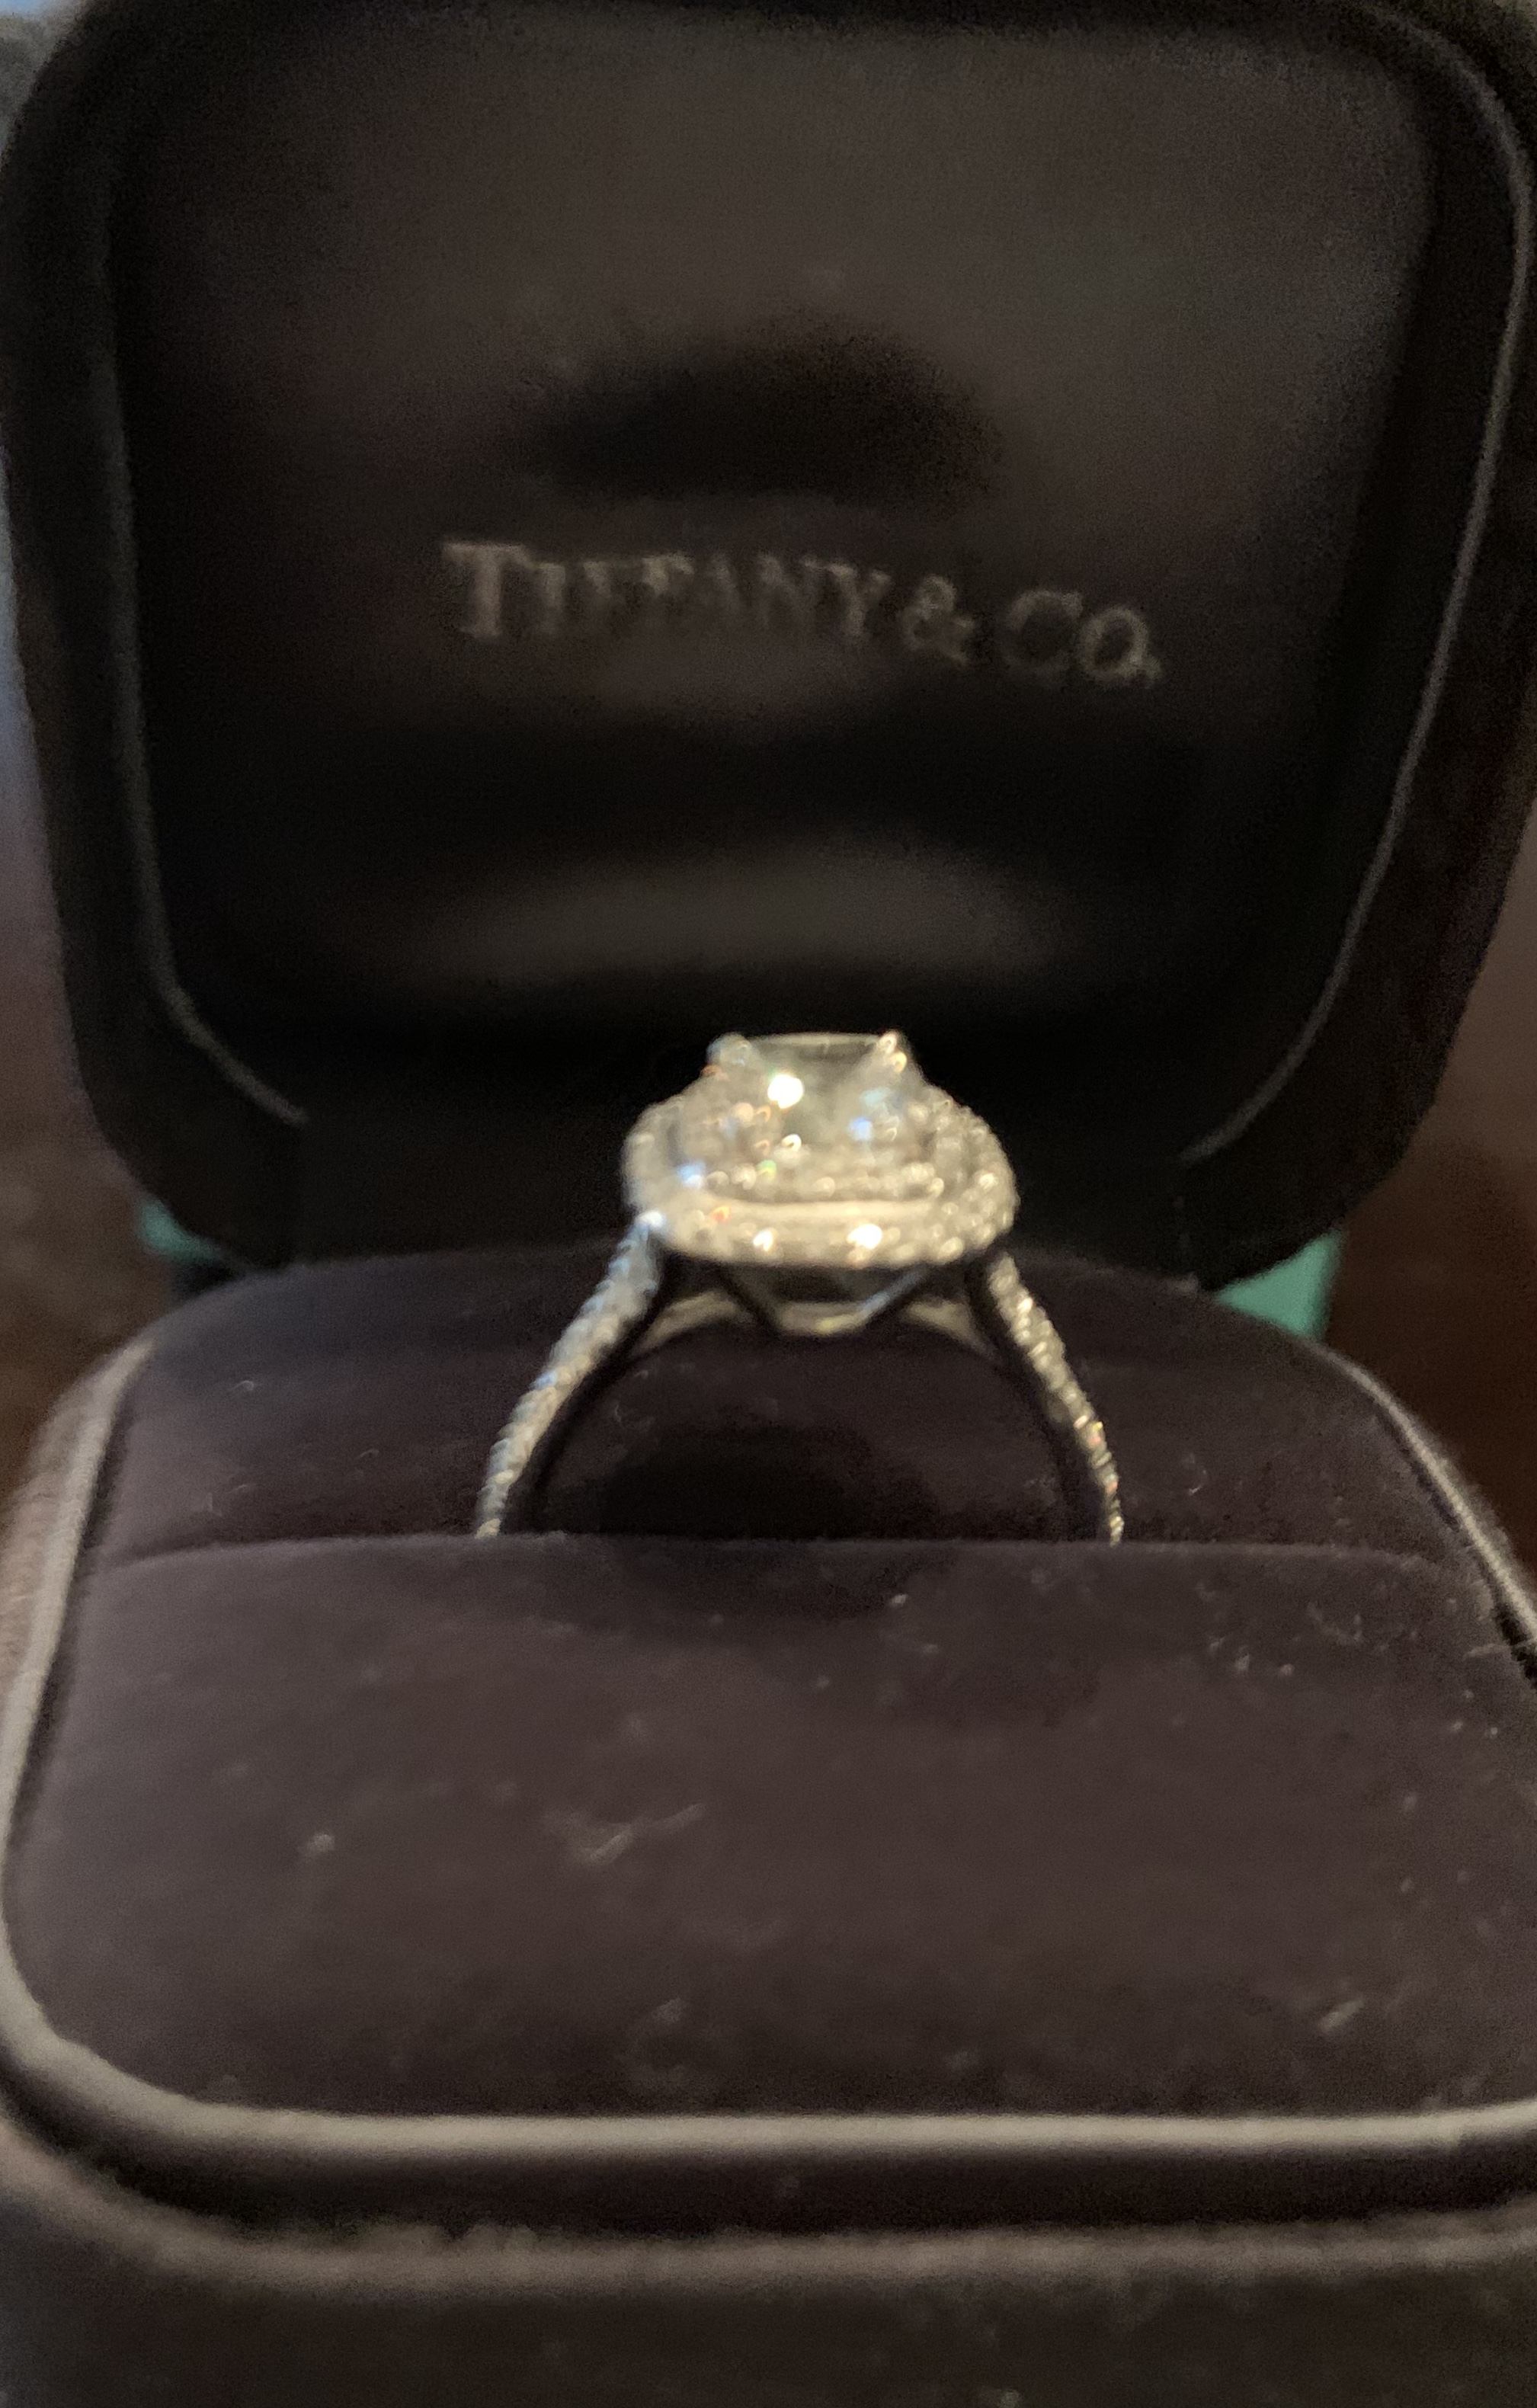 dca4a28f2 Tiffany Soleste Double Halo Engagement Ring 1.28 Carat Center Stone ...